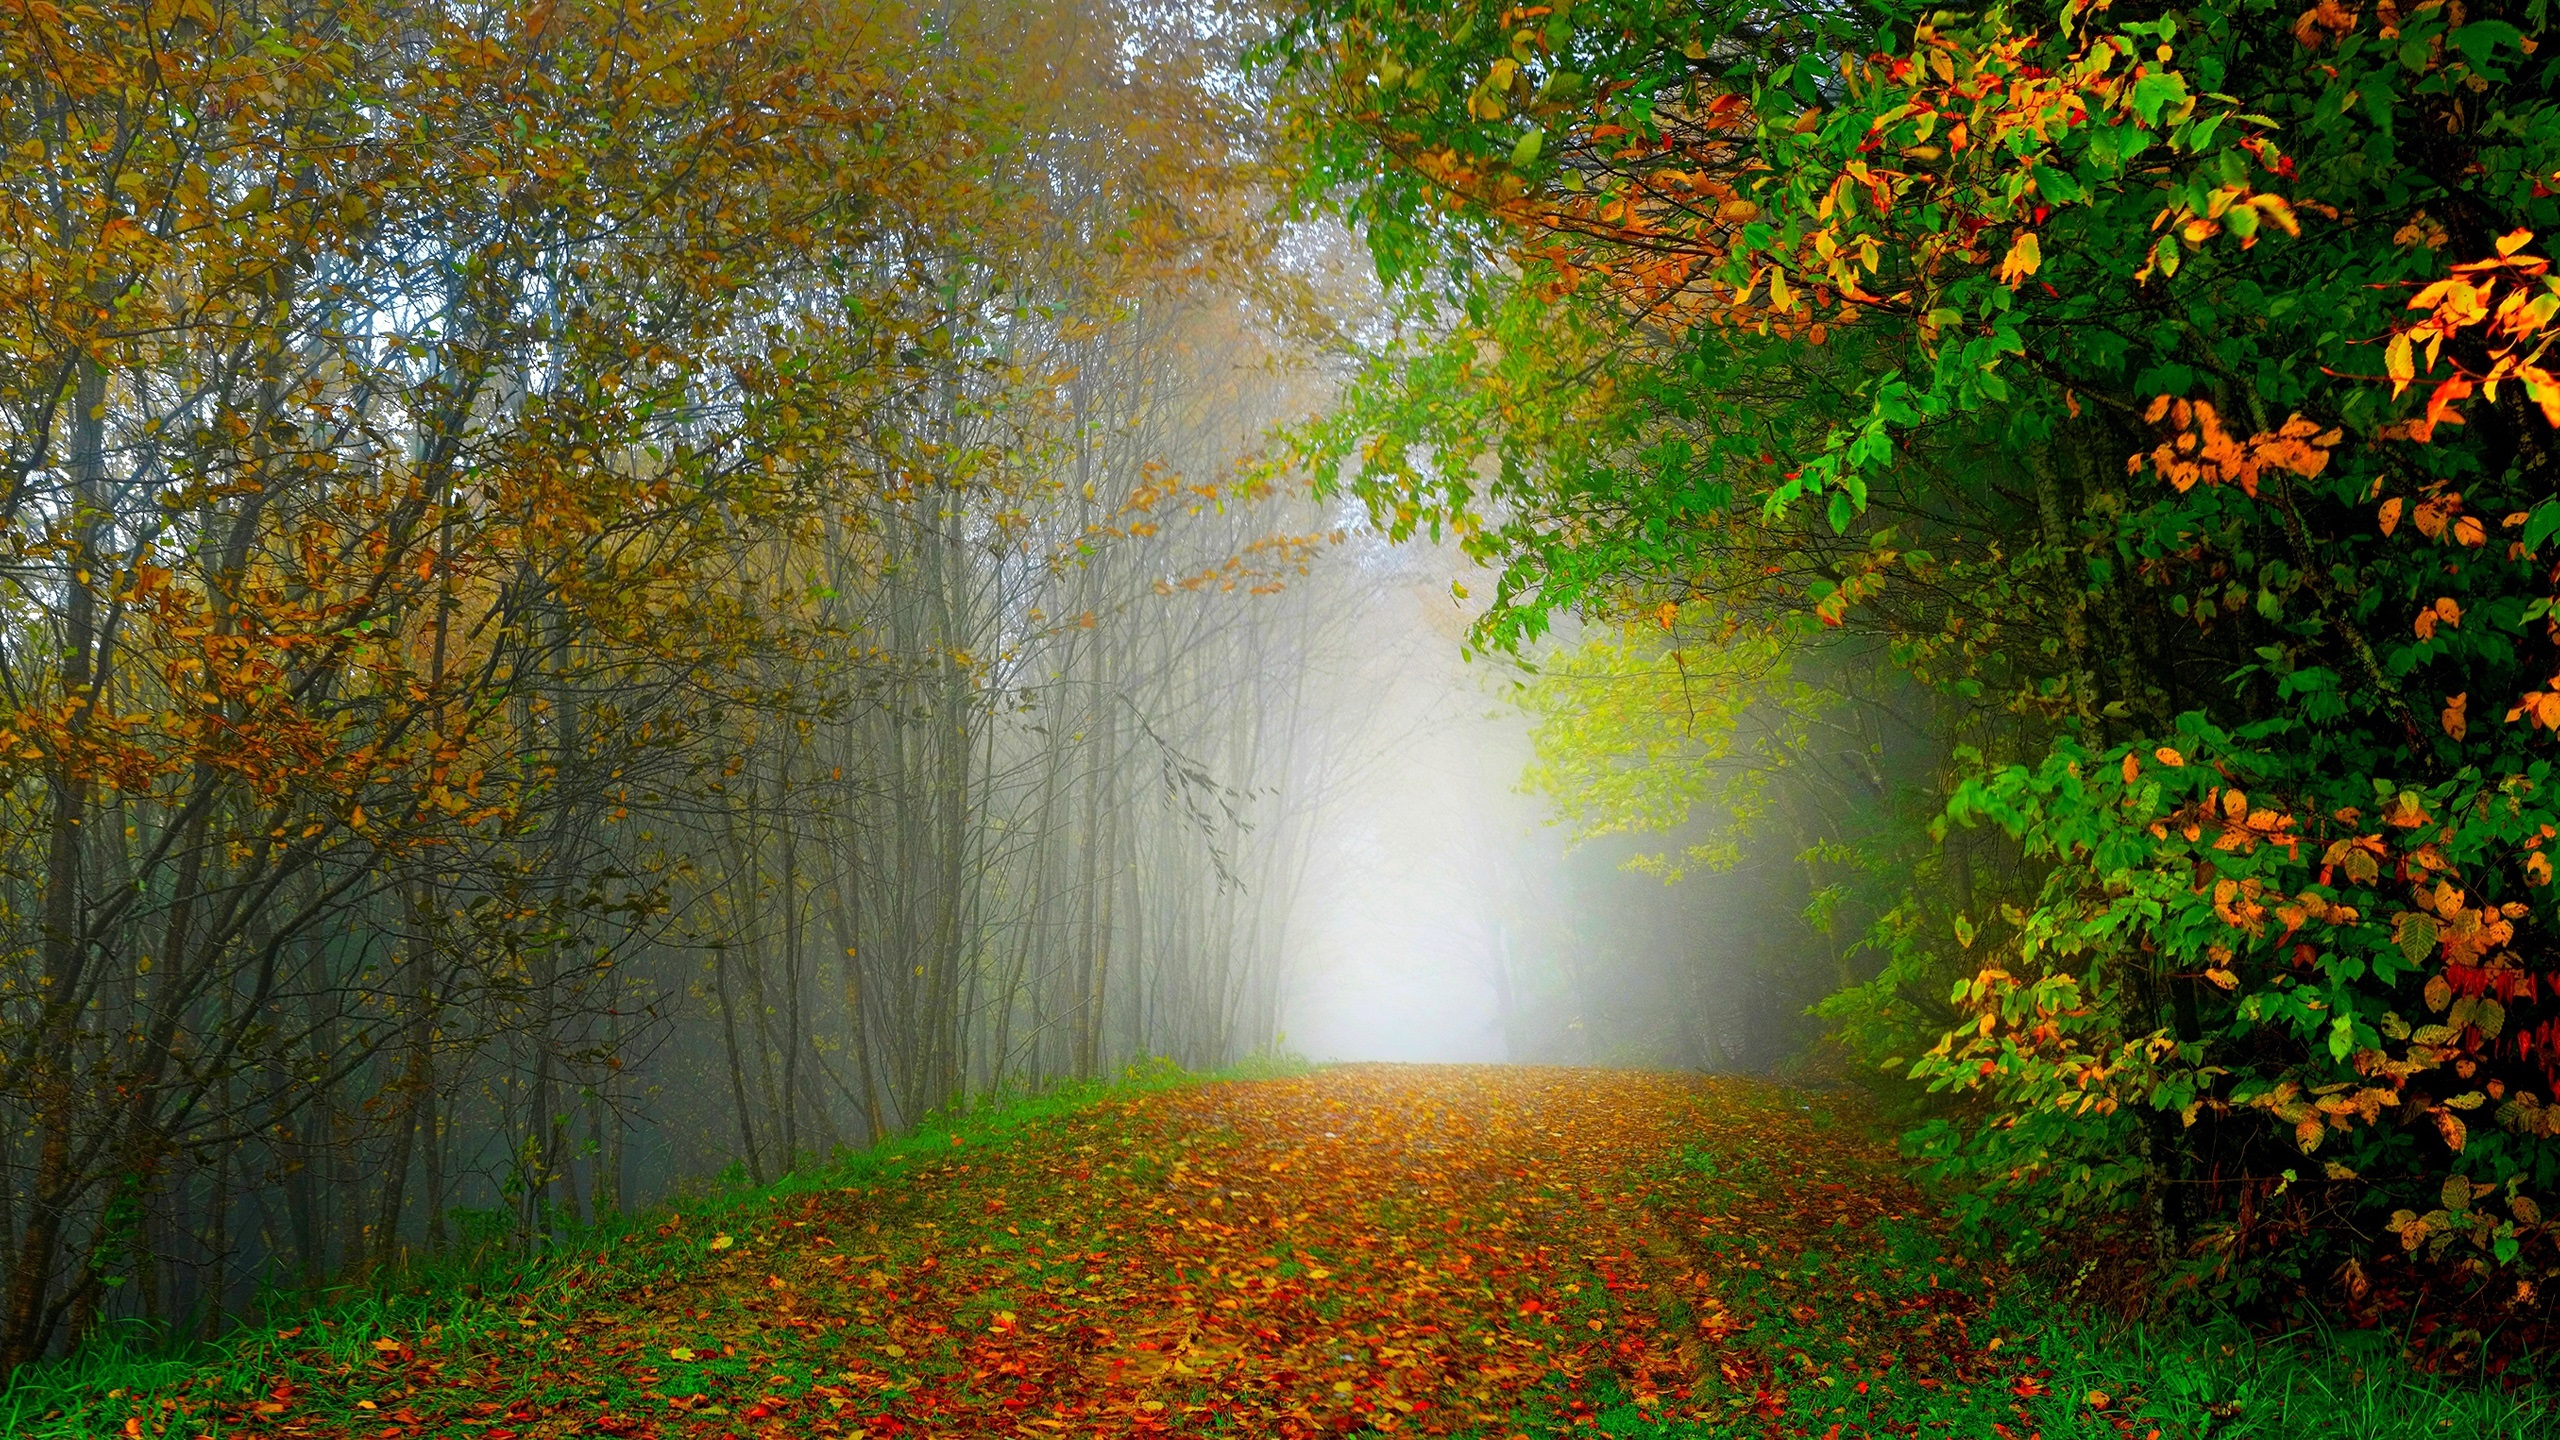 Wallpaper Morning, nature scenery, forest, trees, colorful leaves ...